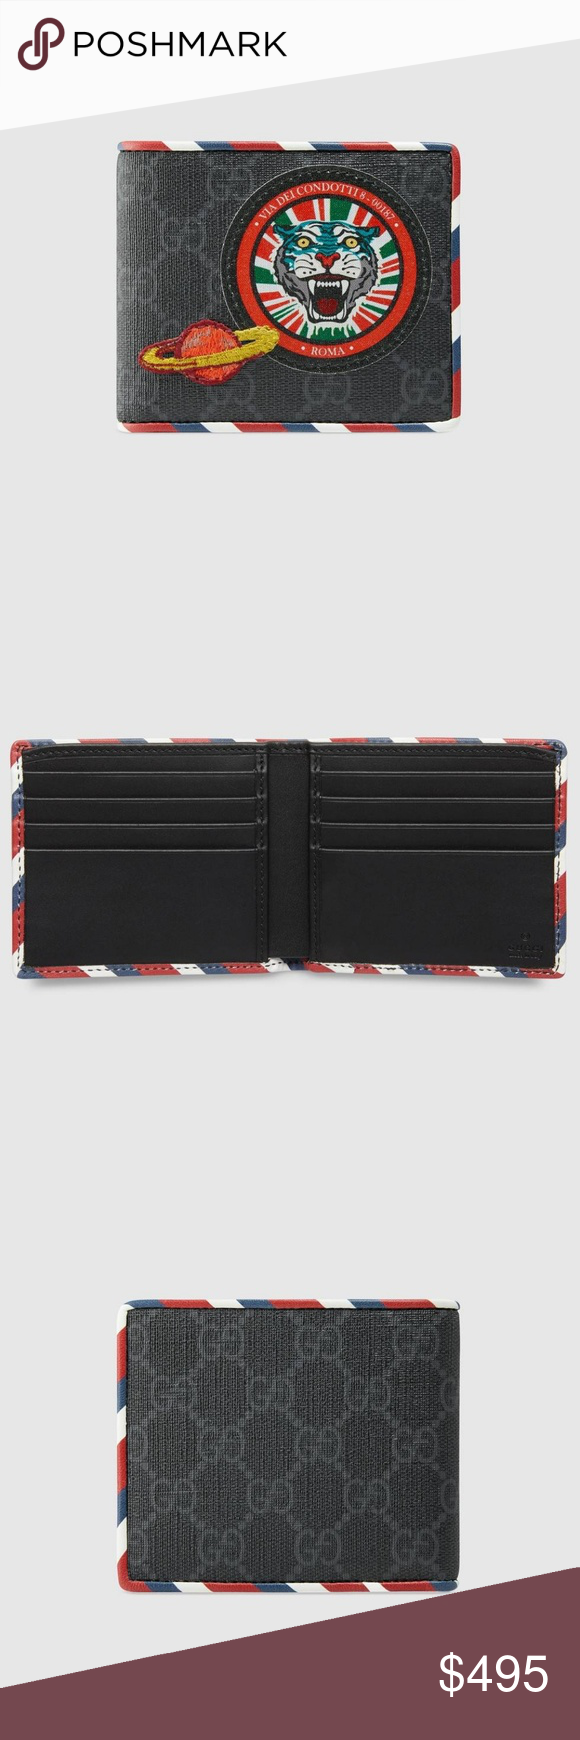 9c60ff095ab77c Gucci Night Courrier GG Supreme wallet Black/grey GG Supreme canvas, a  material with